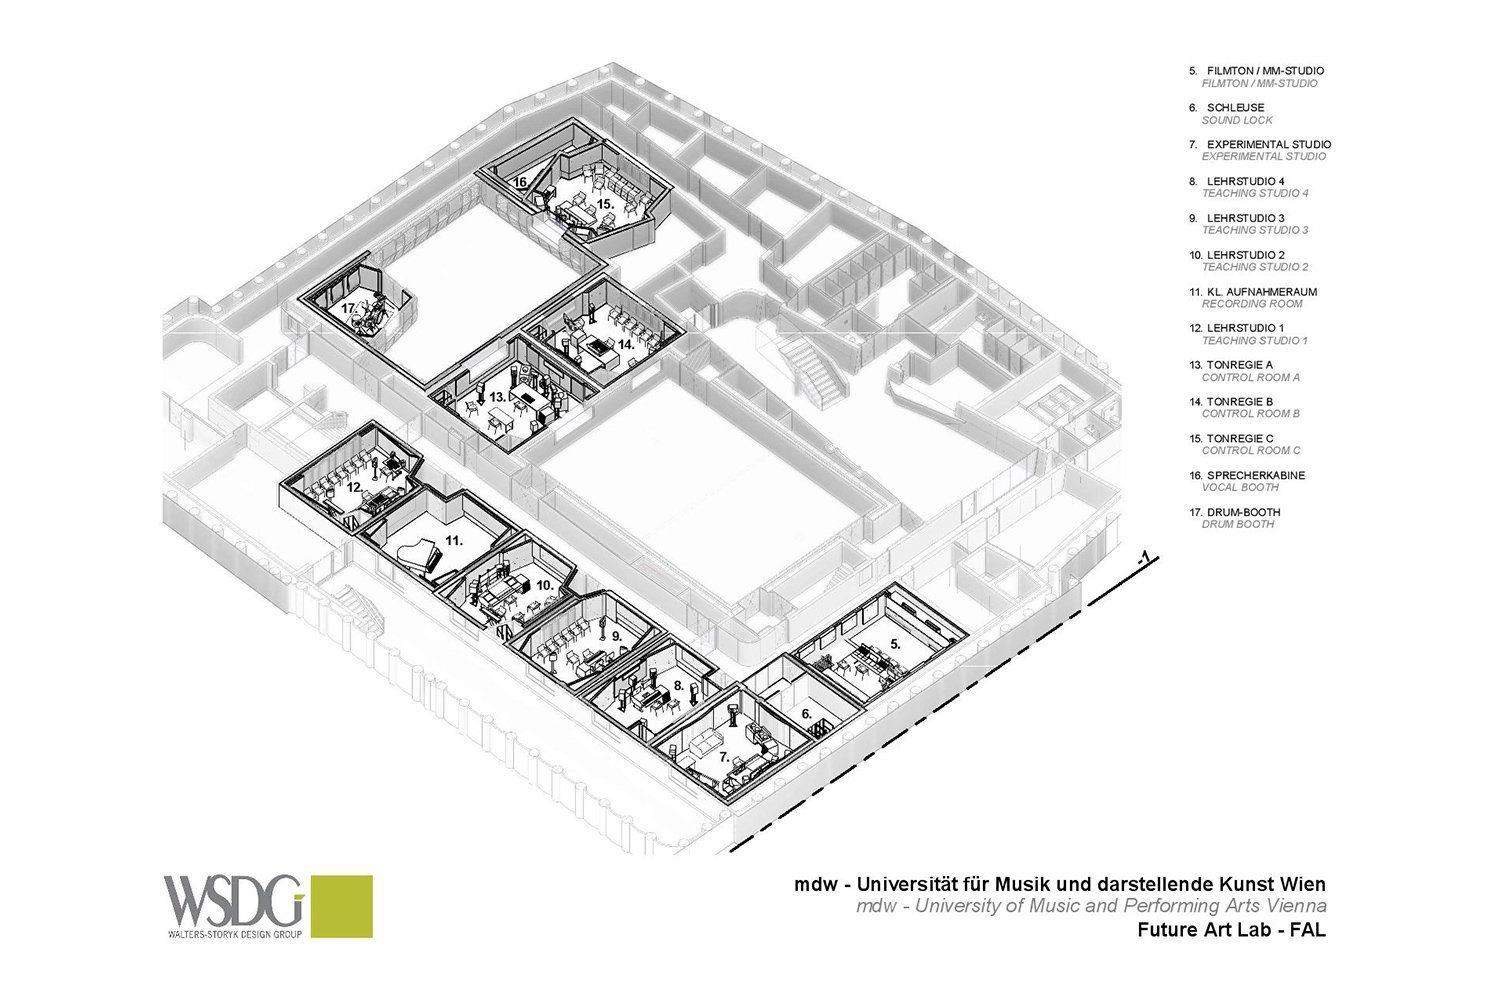 The University of Music and Performing Arts of Vienna new Future Art Lab designed by WSDG. Presentation drawing 3.